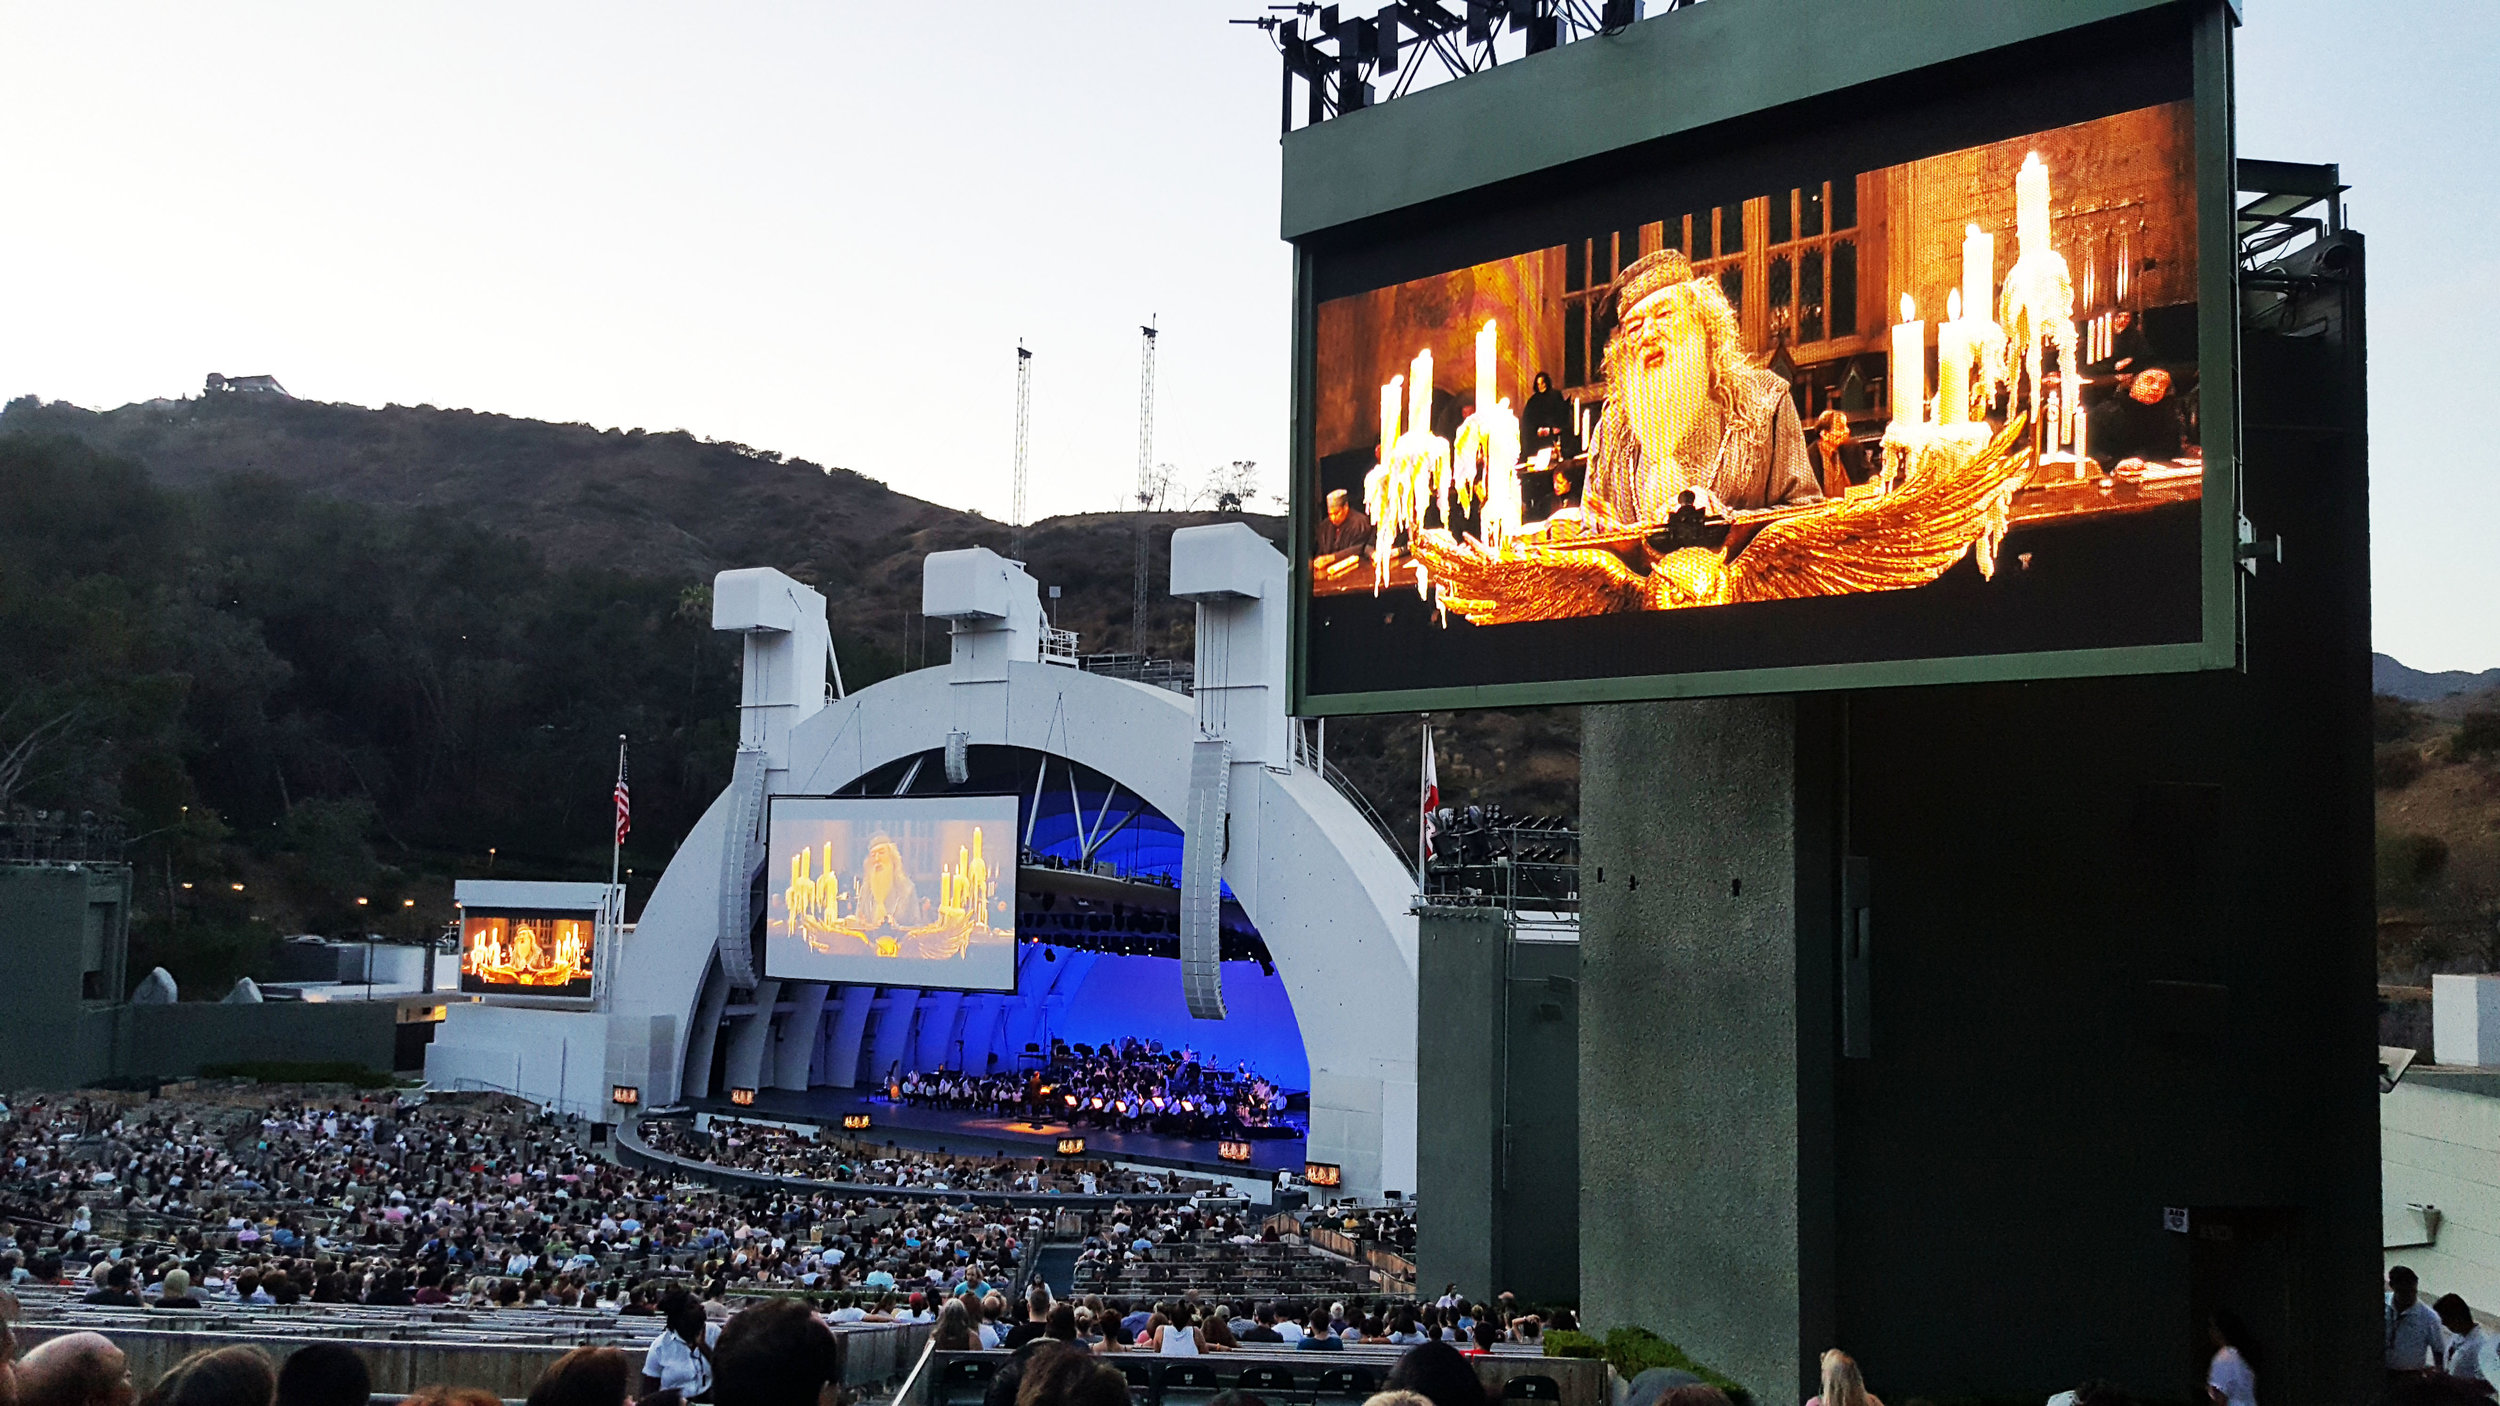 #HollywoodBowl_1.jpg